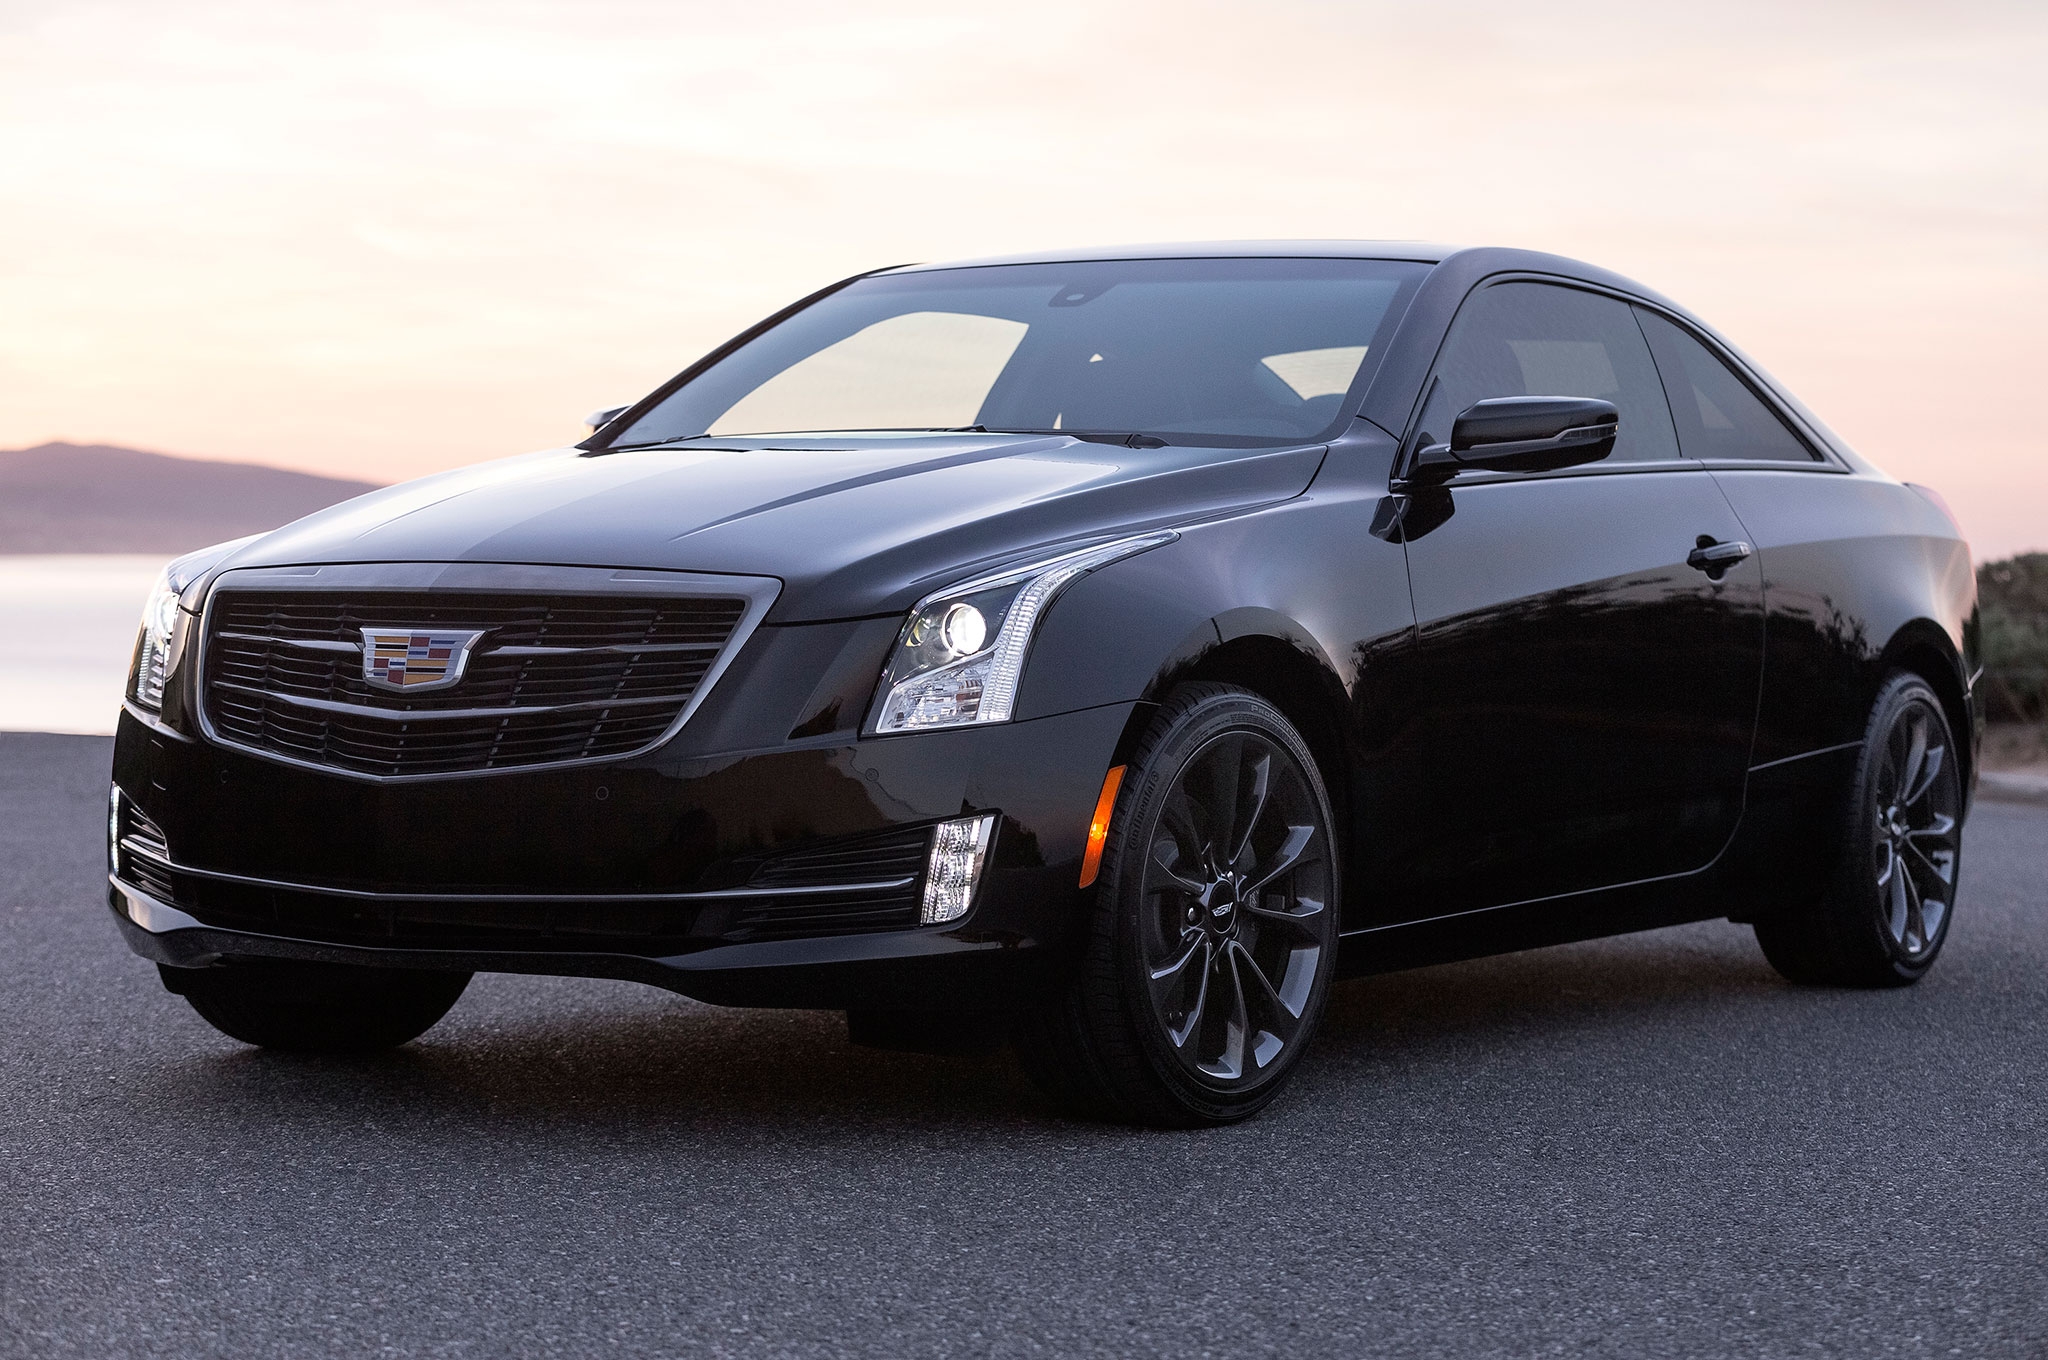 Cadillac Ats Sedan >> 2016 Cadillac ATS and CTS Add Black Chrome Package | Automobile Magazine